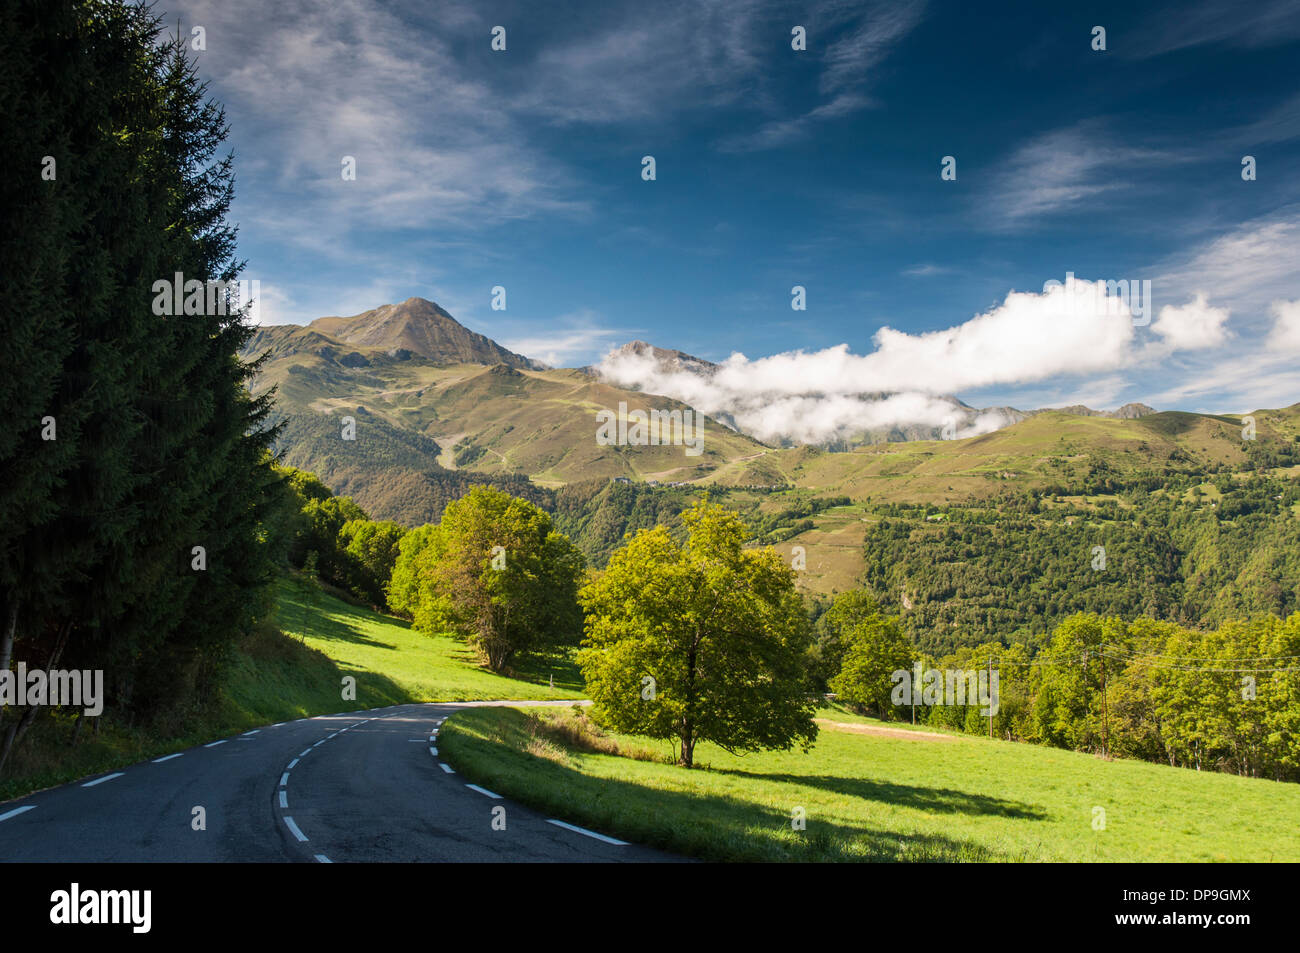 Road D 918 from Col d'Aspin towards Lac de Payolle in the French Pyrenees Stock Photo